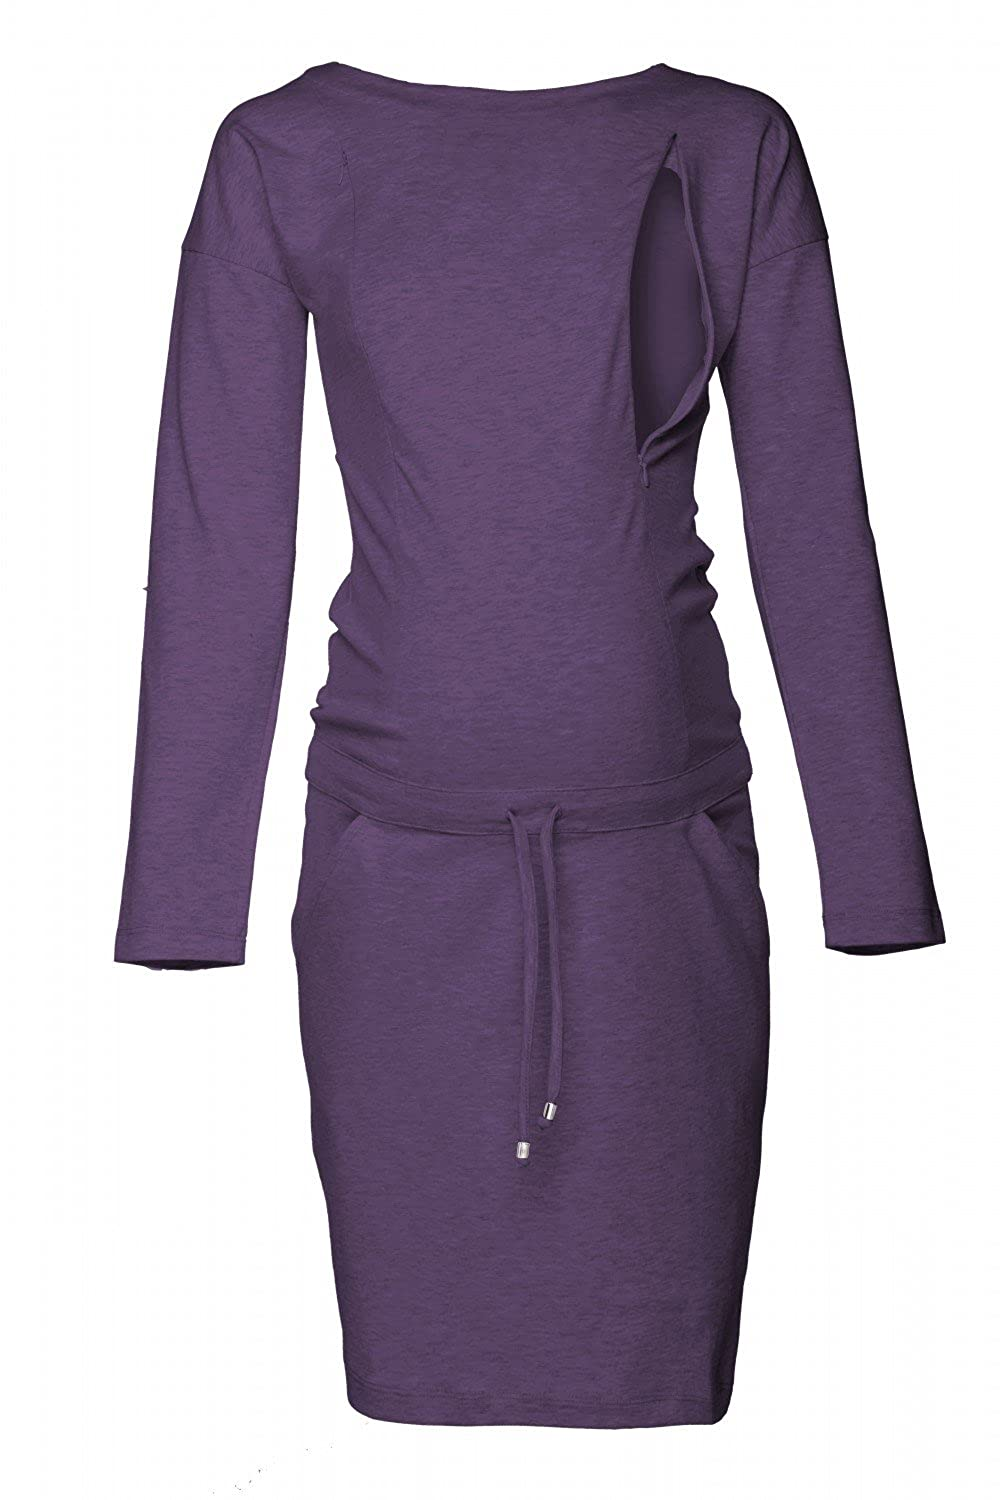 Happy Mama. Damen 2in1 Umstands Still Sweatshirt-Kleid Lange Ä rmel Taschen. 709p nursingdress_709